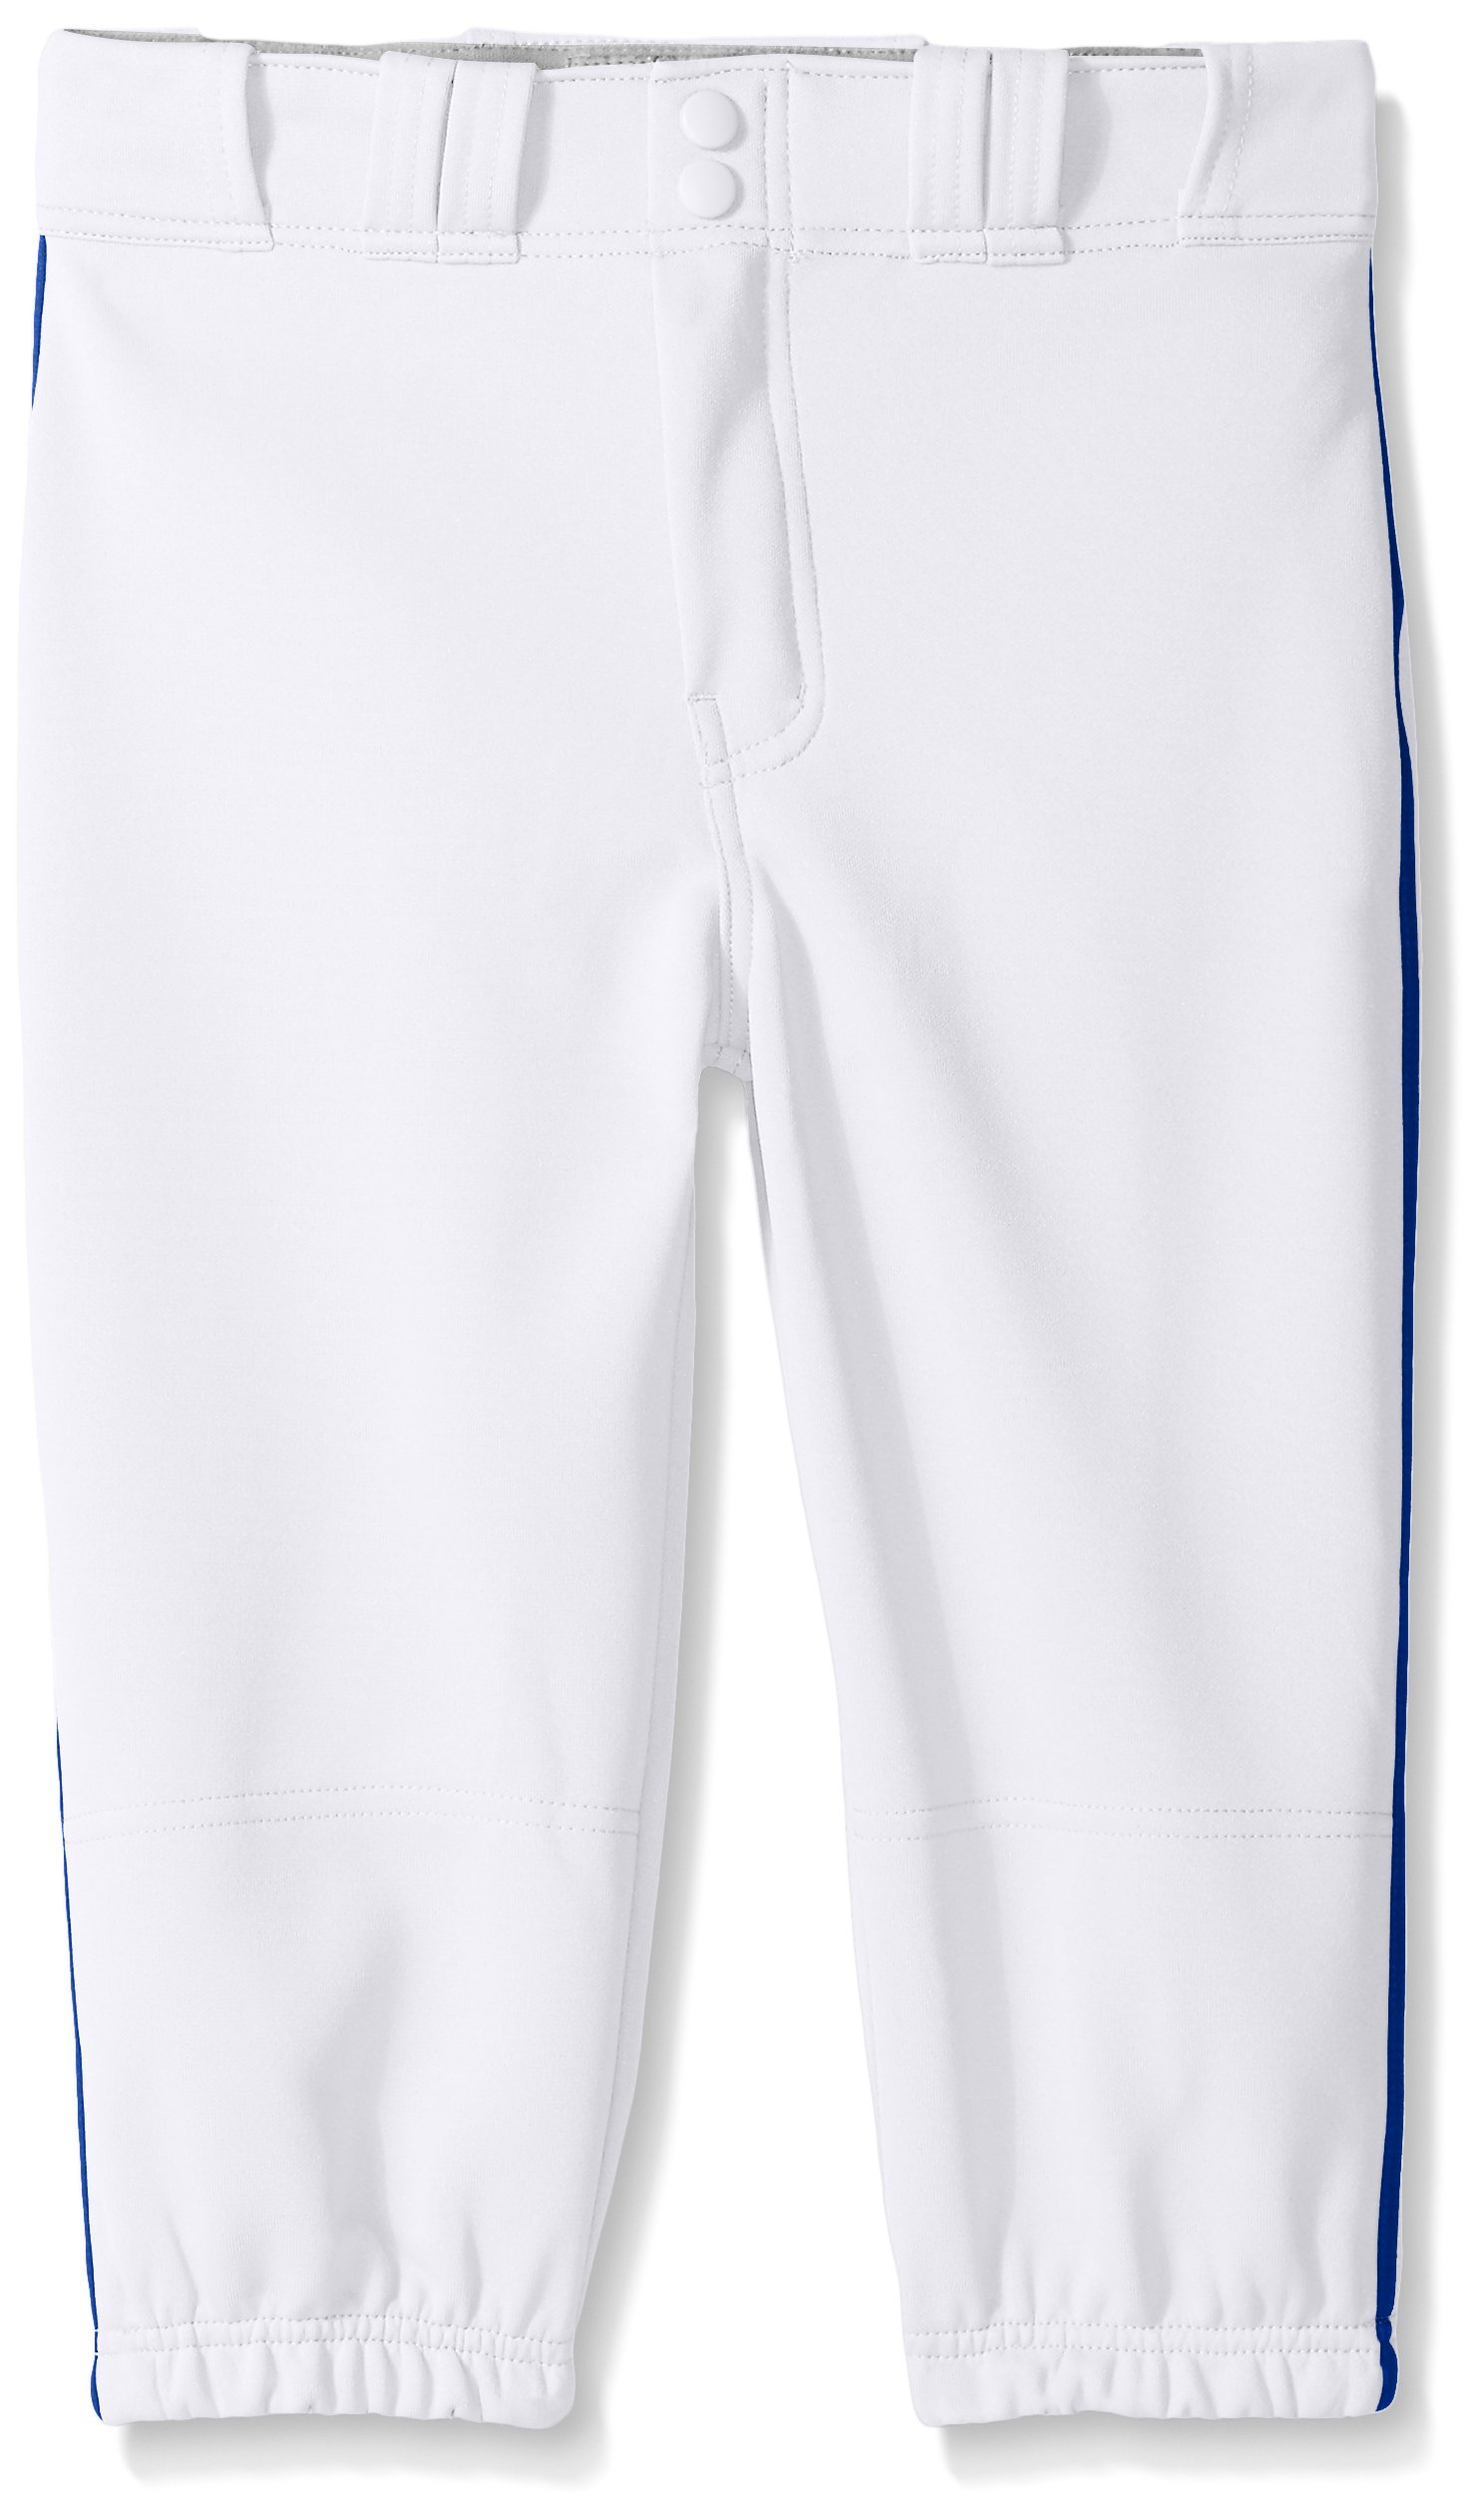 Easton Boys PRO Plus Piped Knicker, White/Royal, Small